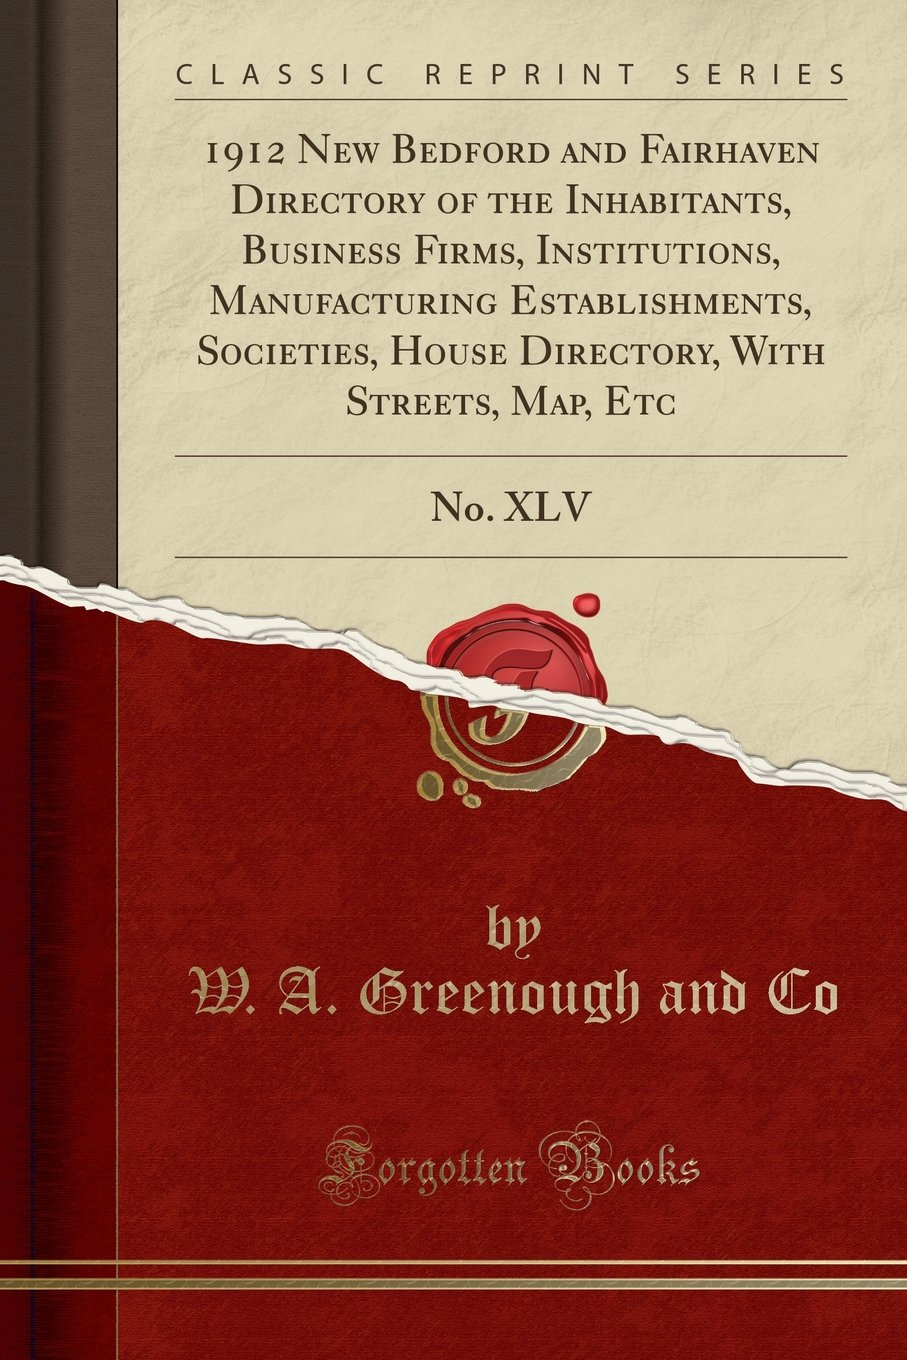 Read Online 1912 New Bedford and Fairhaven Directory of the Inhabitants, Business Firms, Institutions, Manufacturing Establishments, Societies, House Directory, With Streets, Map, Etc: No. XLV (Classic Reprint) PDF